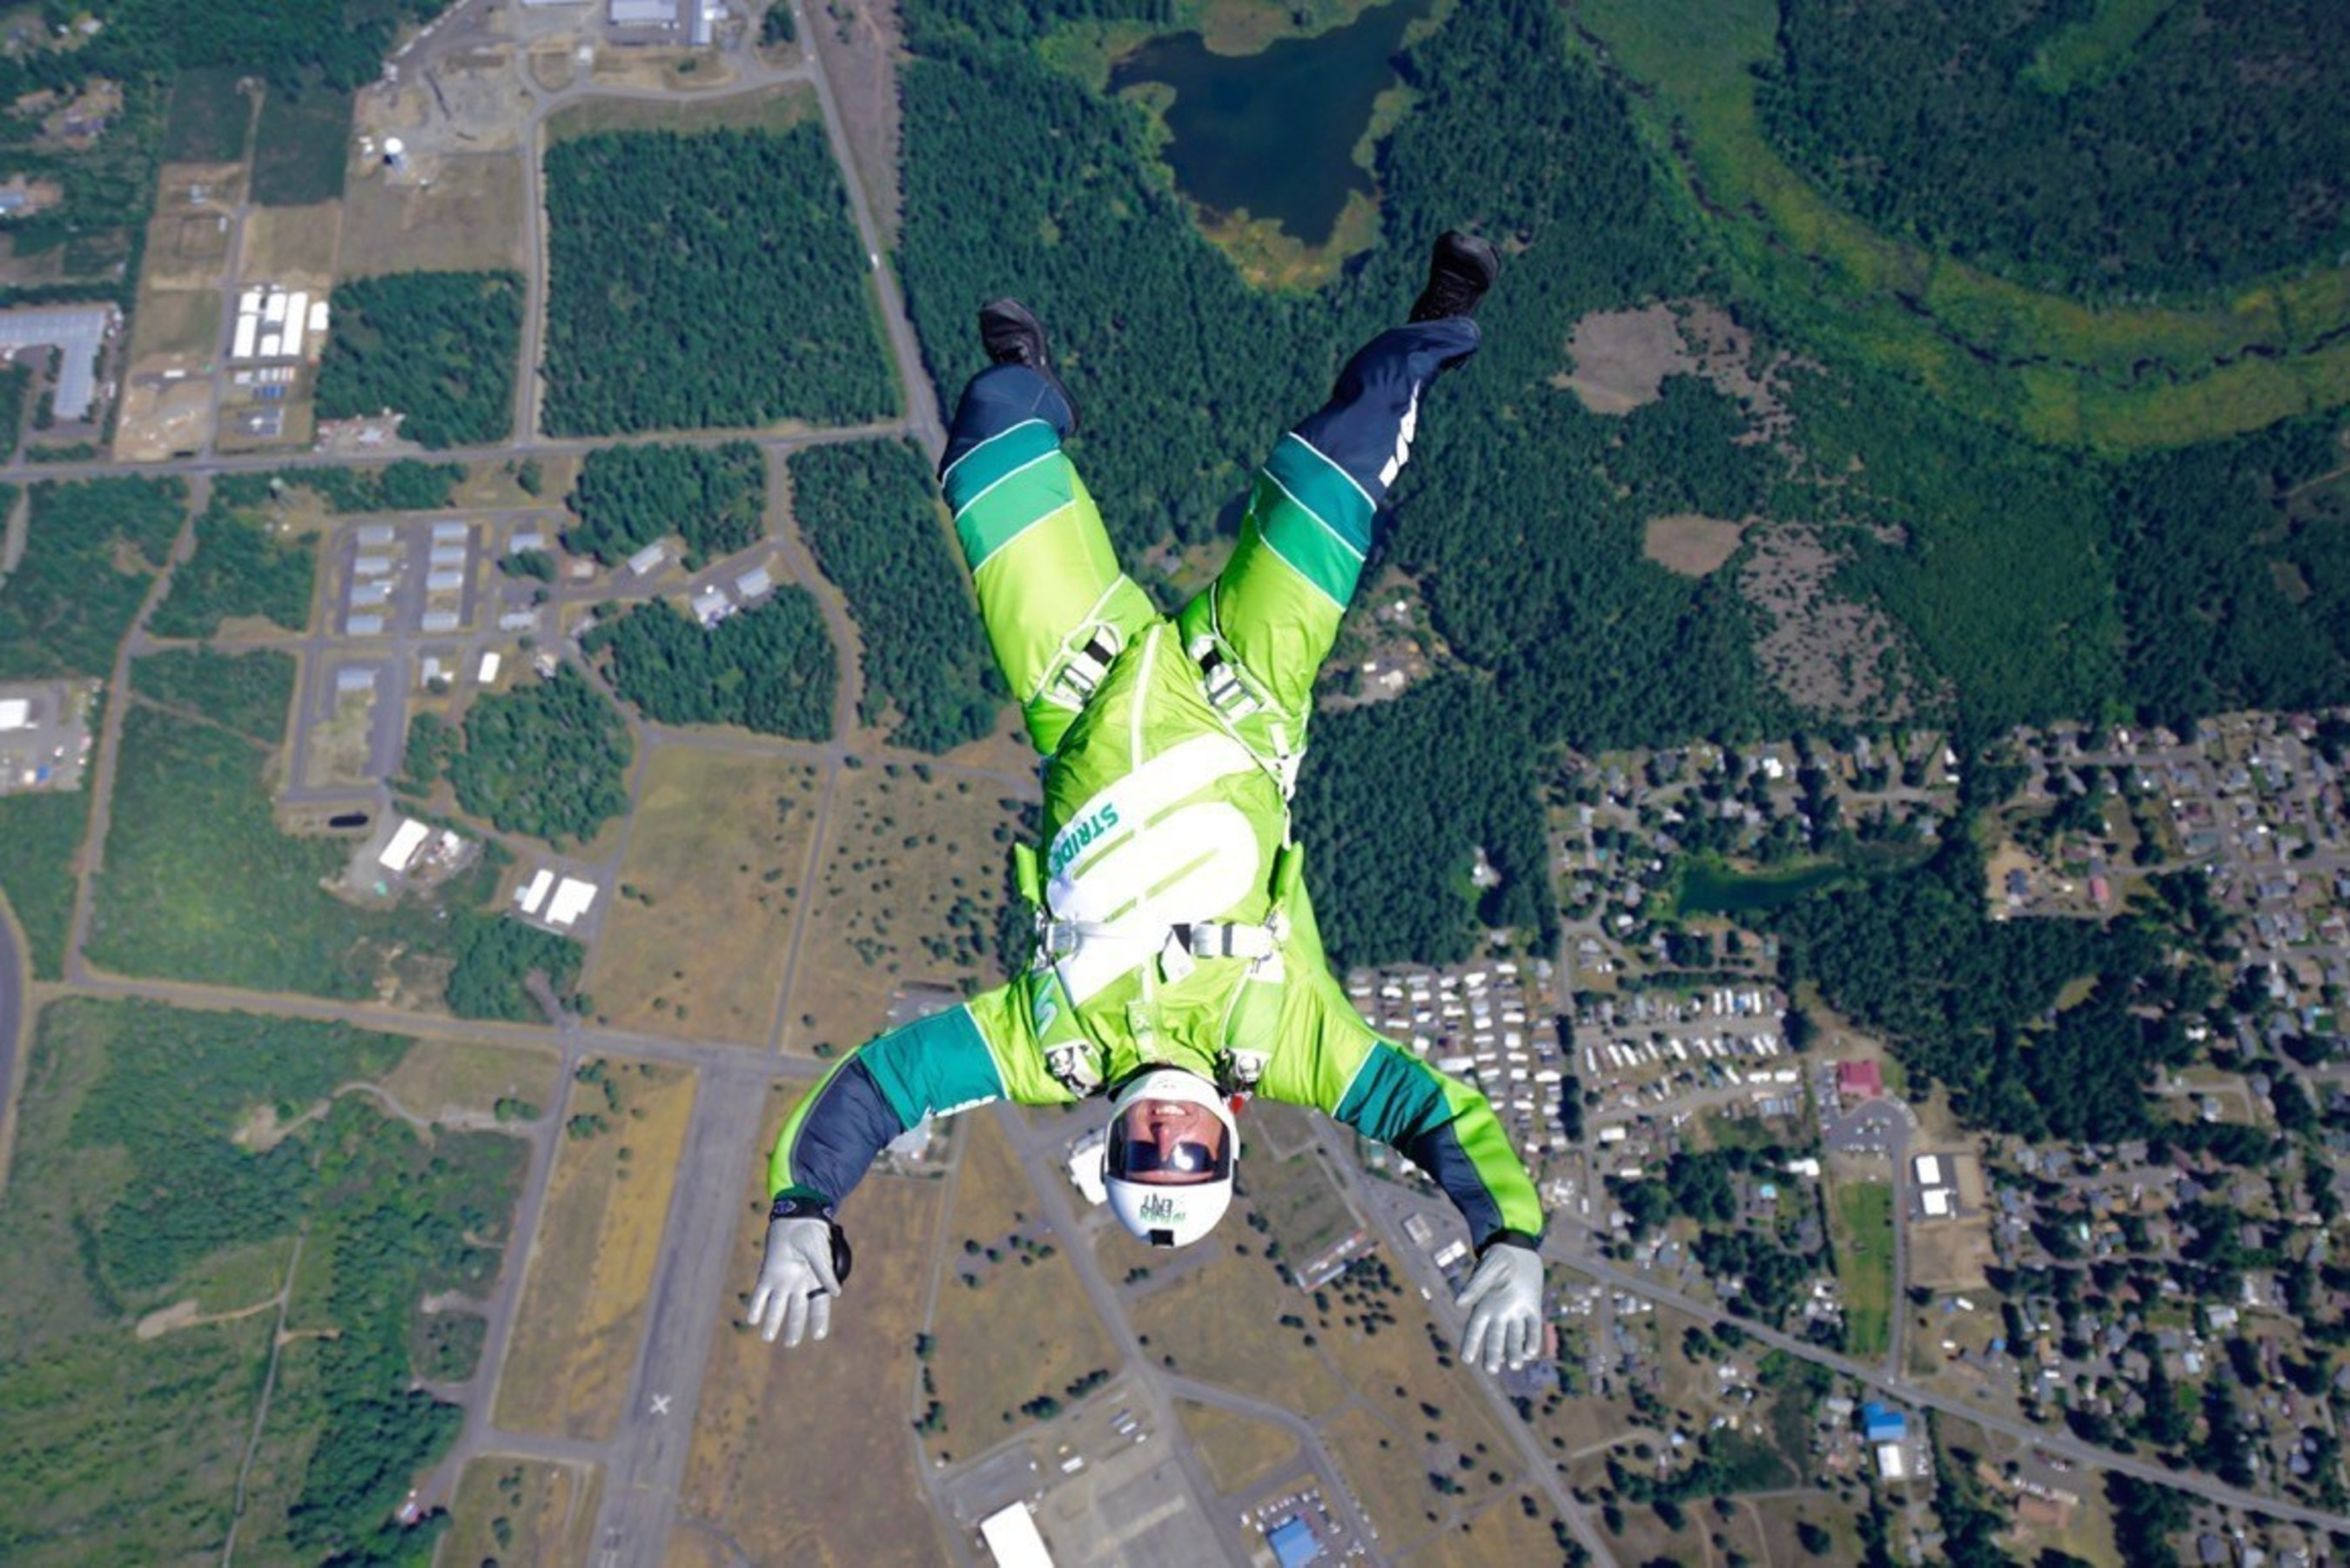 Skydiver Luke Aikins to Take Historic Flying Leap from 25,000 Feet - Without a Parachute or Wing Suit - on 'STRIDE GUM PRESENTS HEAVEN SENT' Airing Live Saturday, July